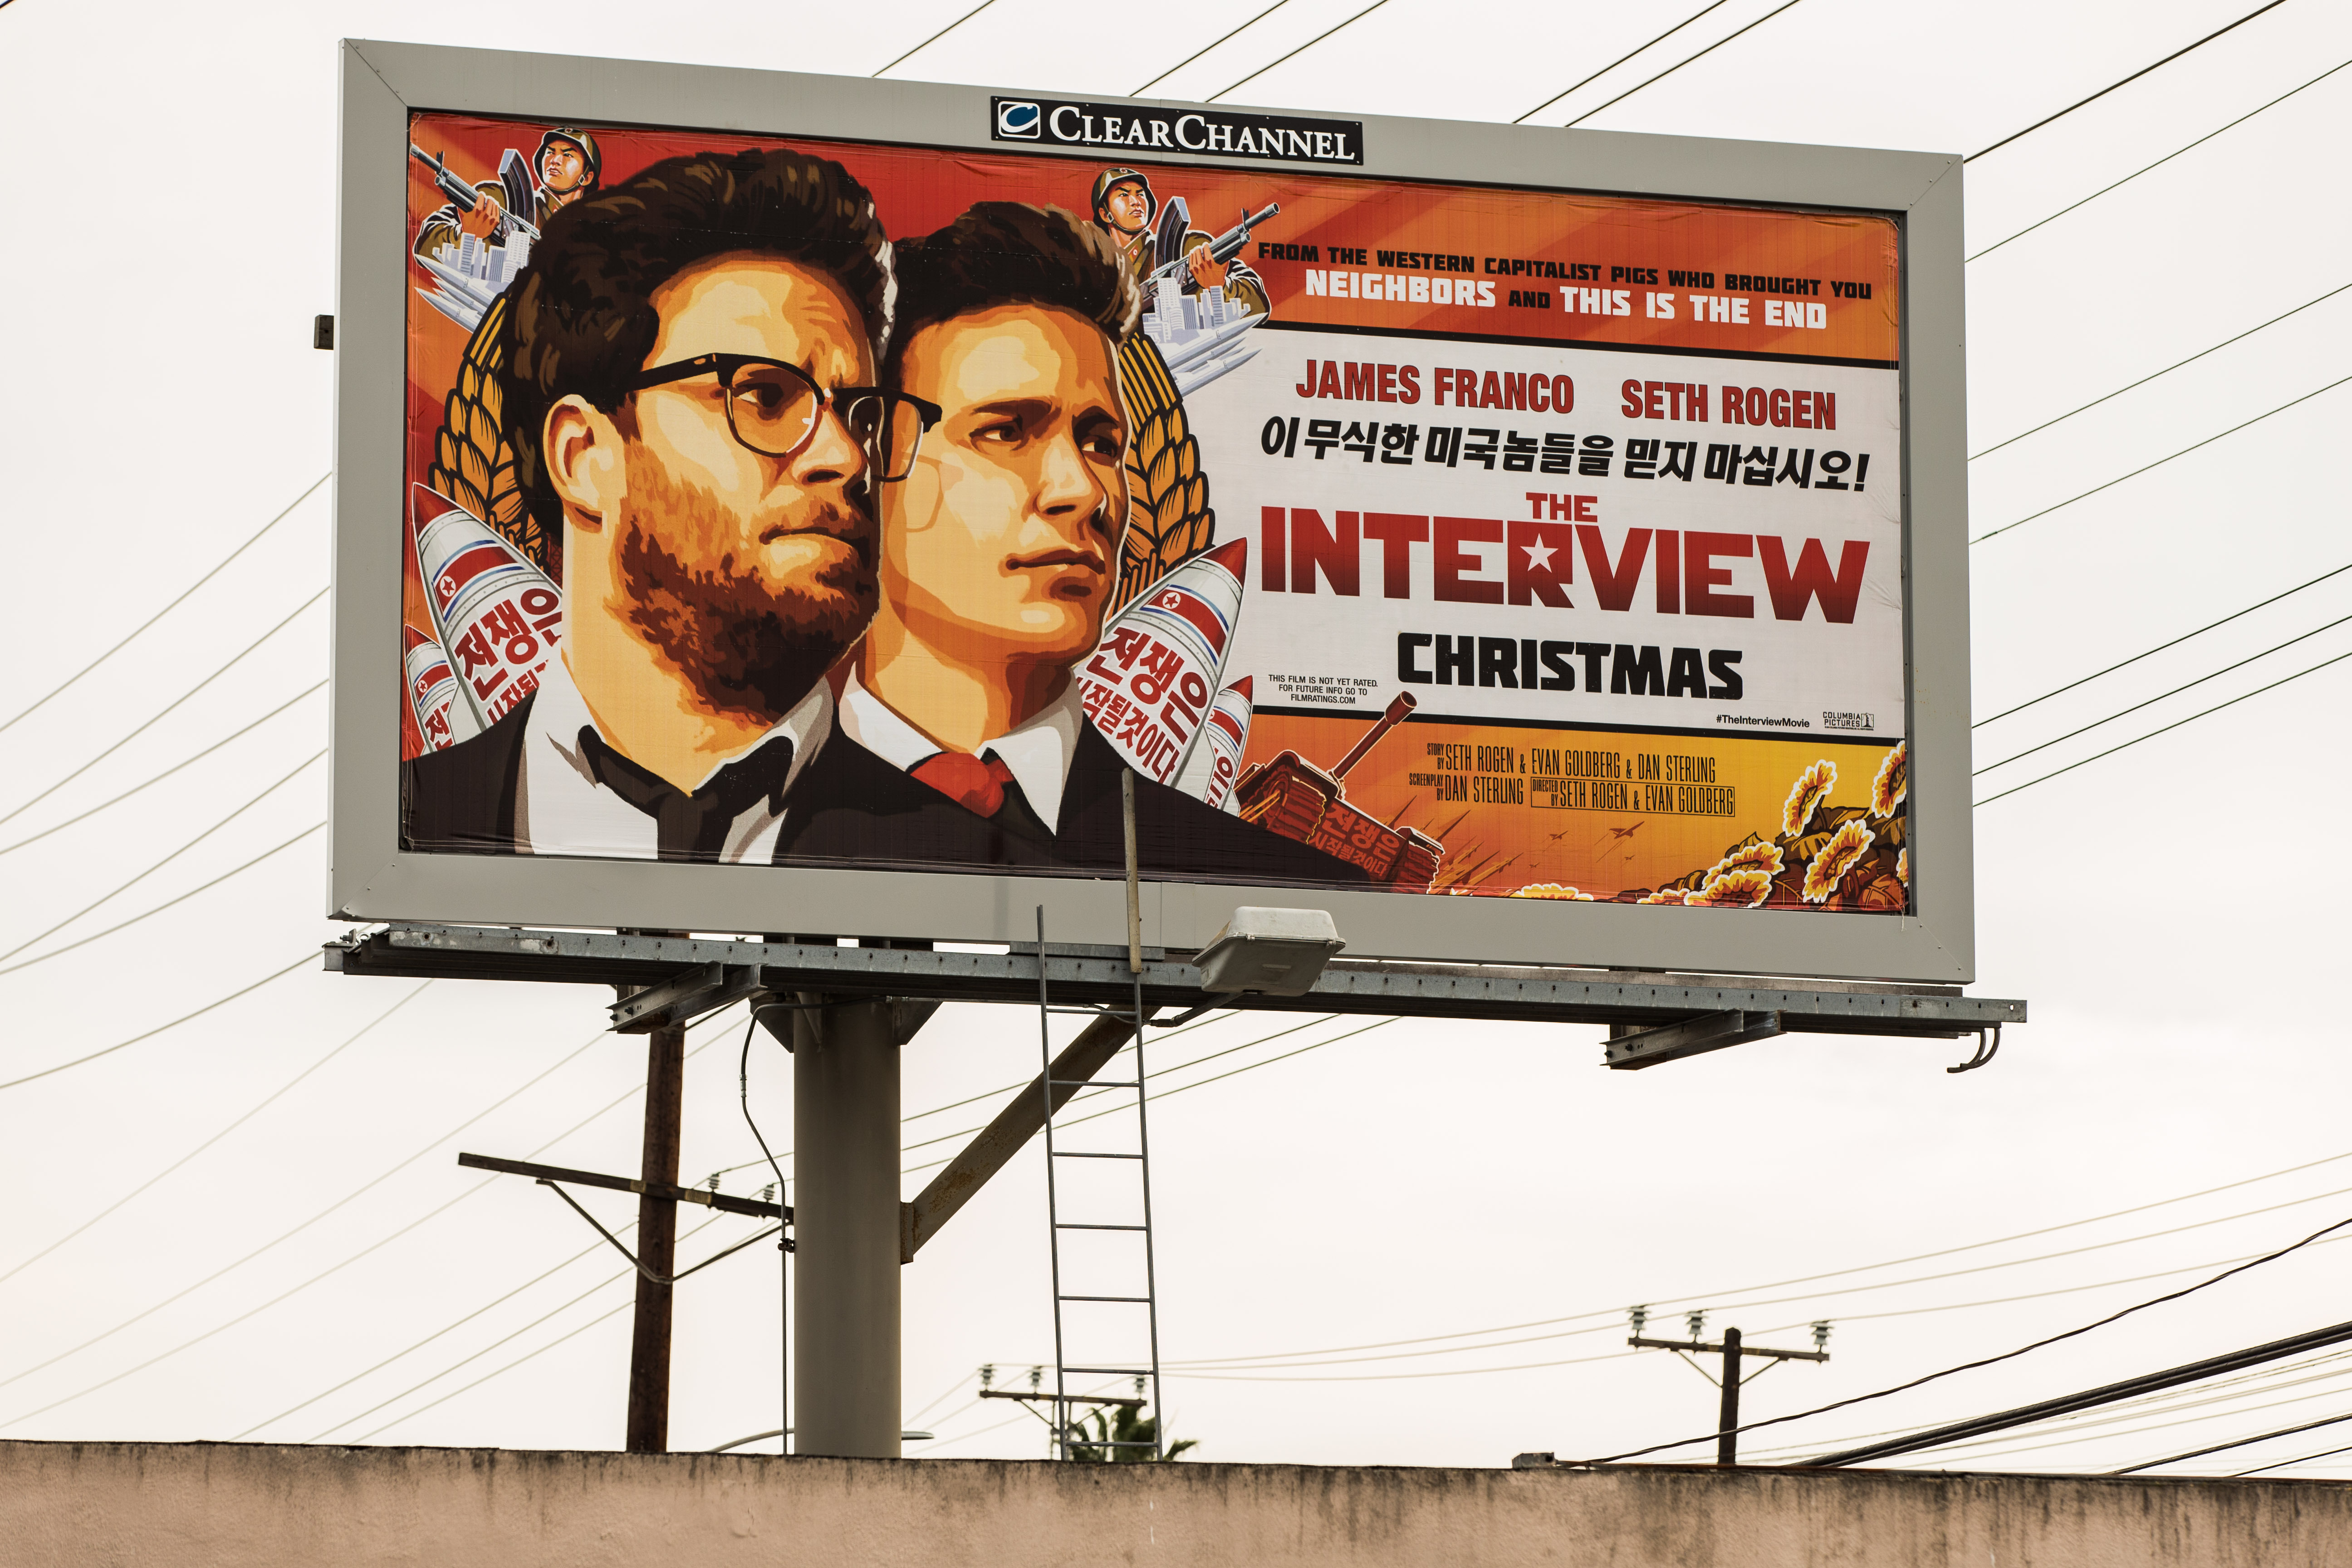 A billboard for the film 'The Interview' is displayed Dec. 19, 2014 in Venice, Calif.